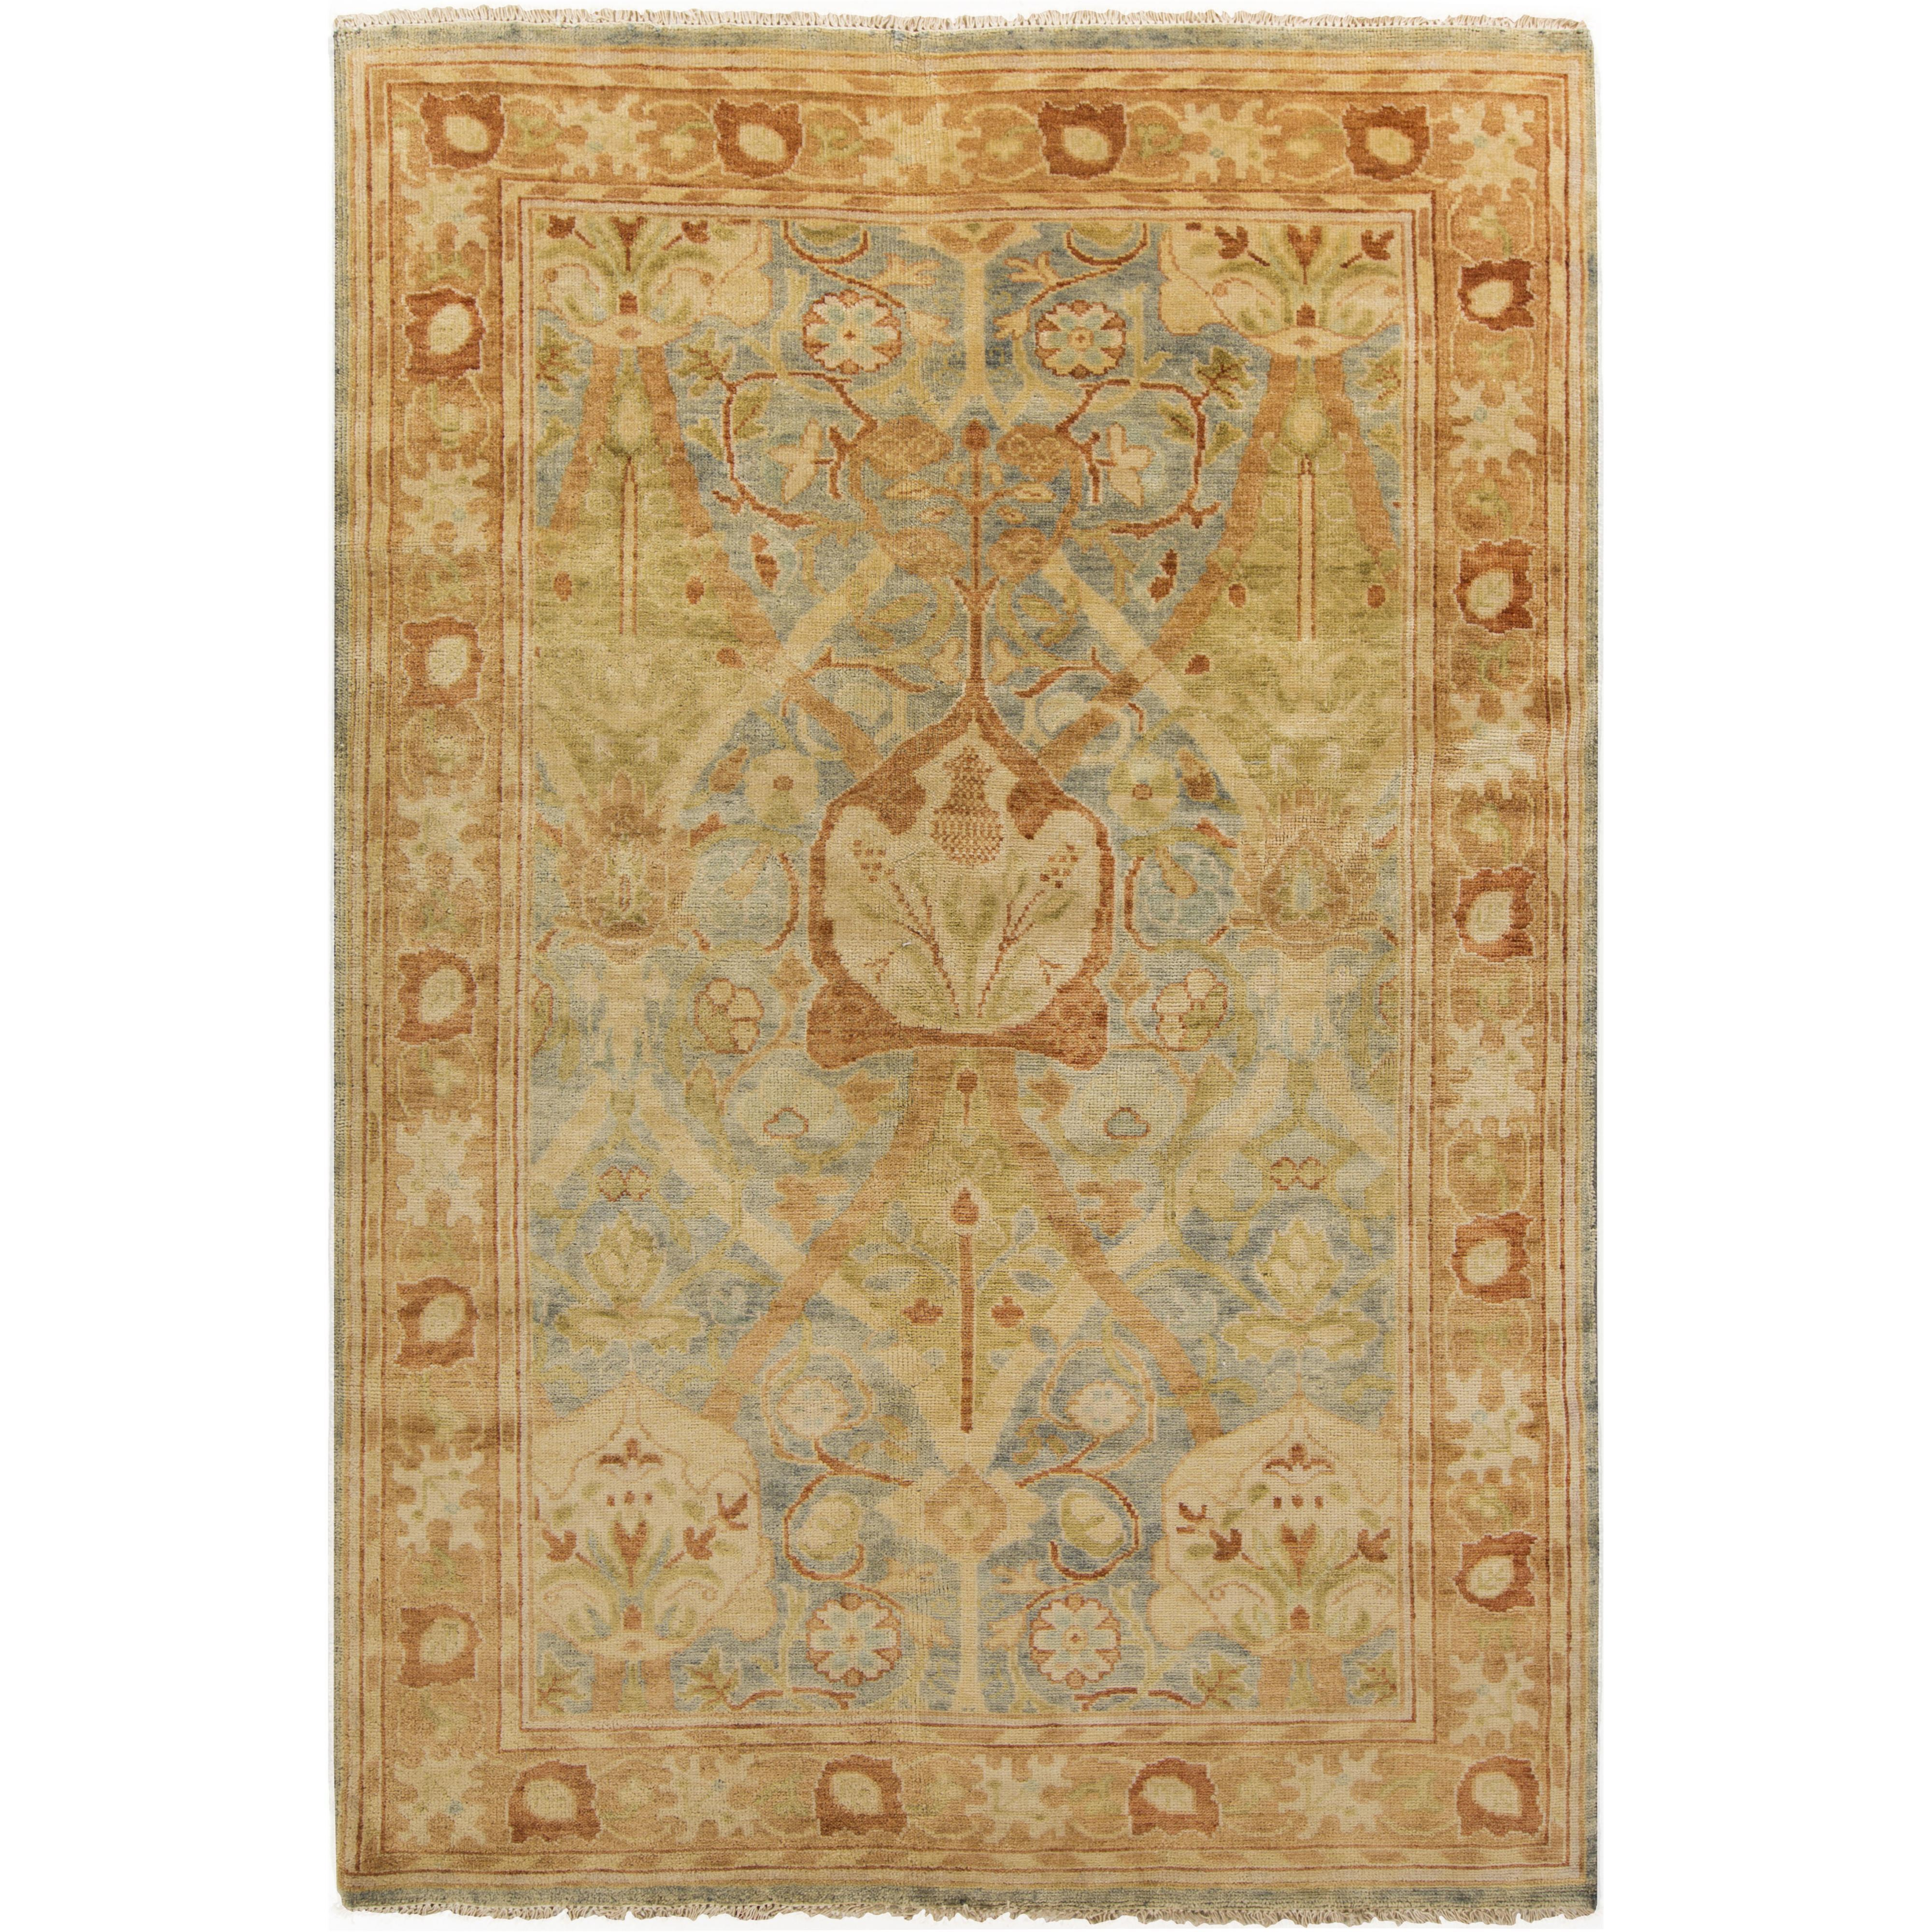 Surya Rugs Hillcrest 9' x 13' - Item Number: HIL9022-913